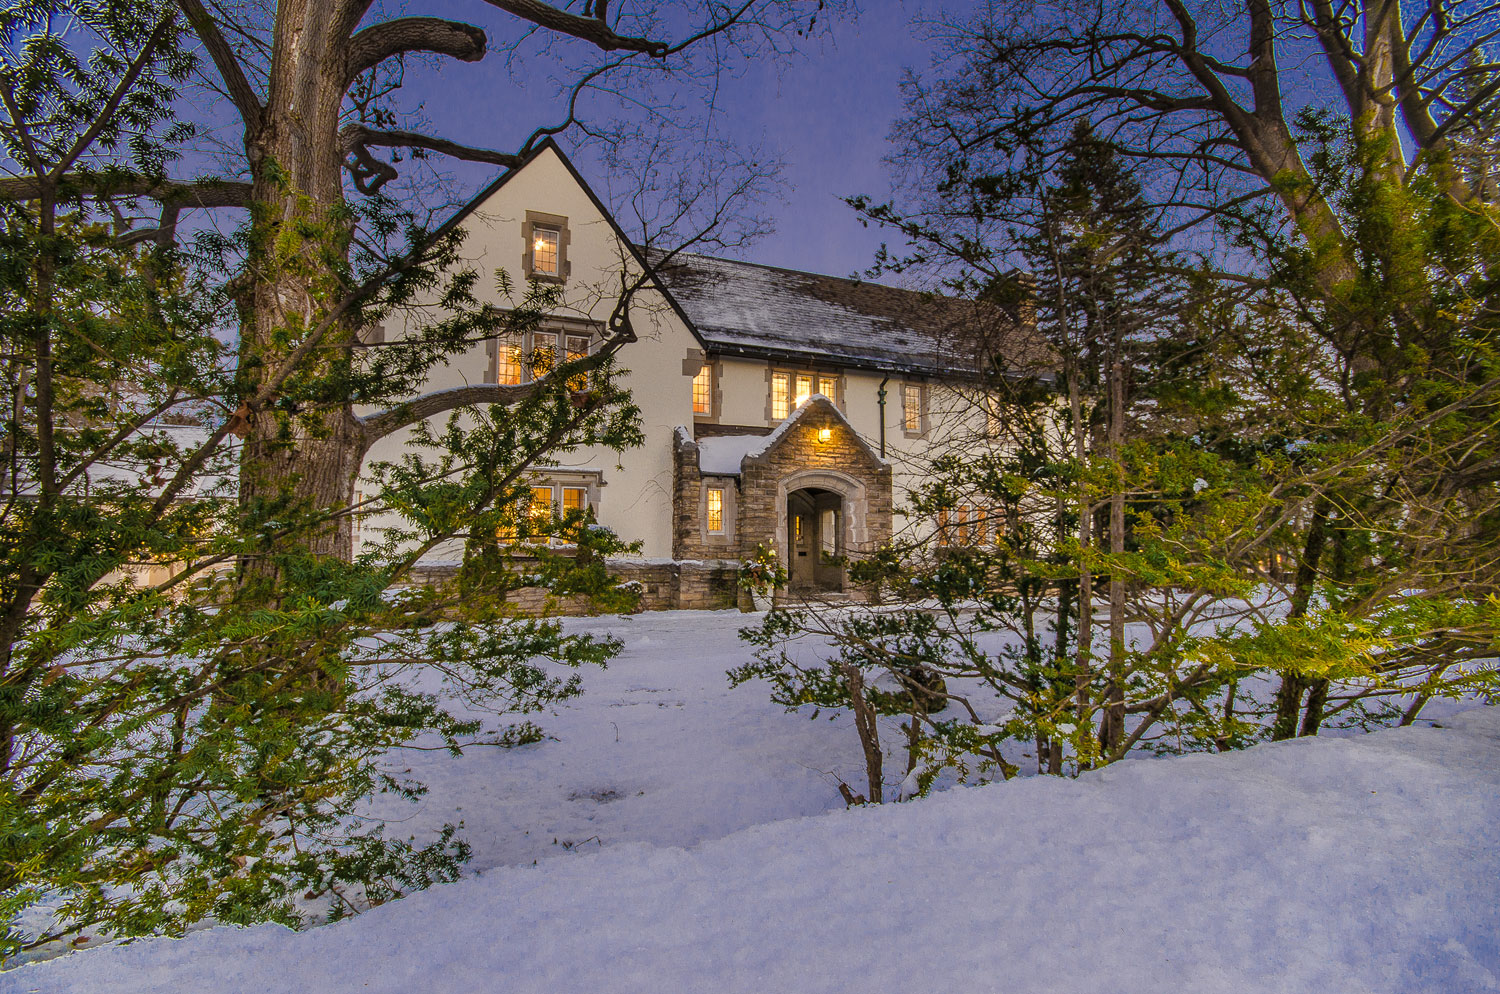 This former ambassador's residence is situated in one of Ottawa's most prestigious addresses in the Village of Rockcliffe Park, located a 15-minute drive from the famous Rideau Canal Skateway.